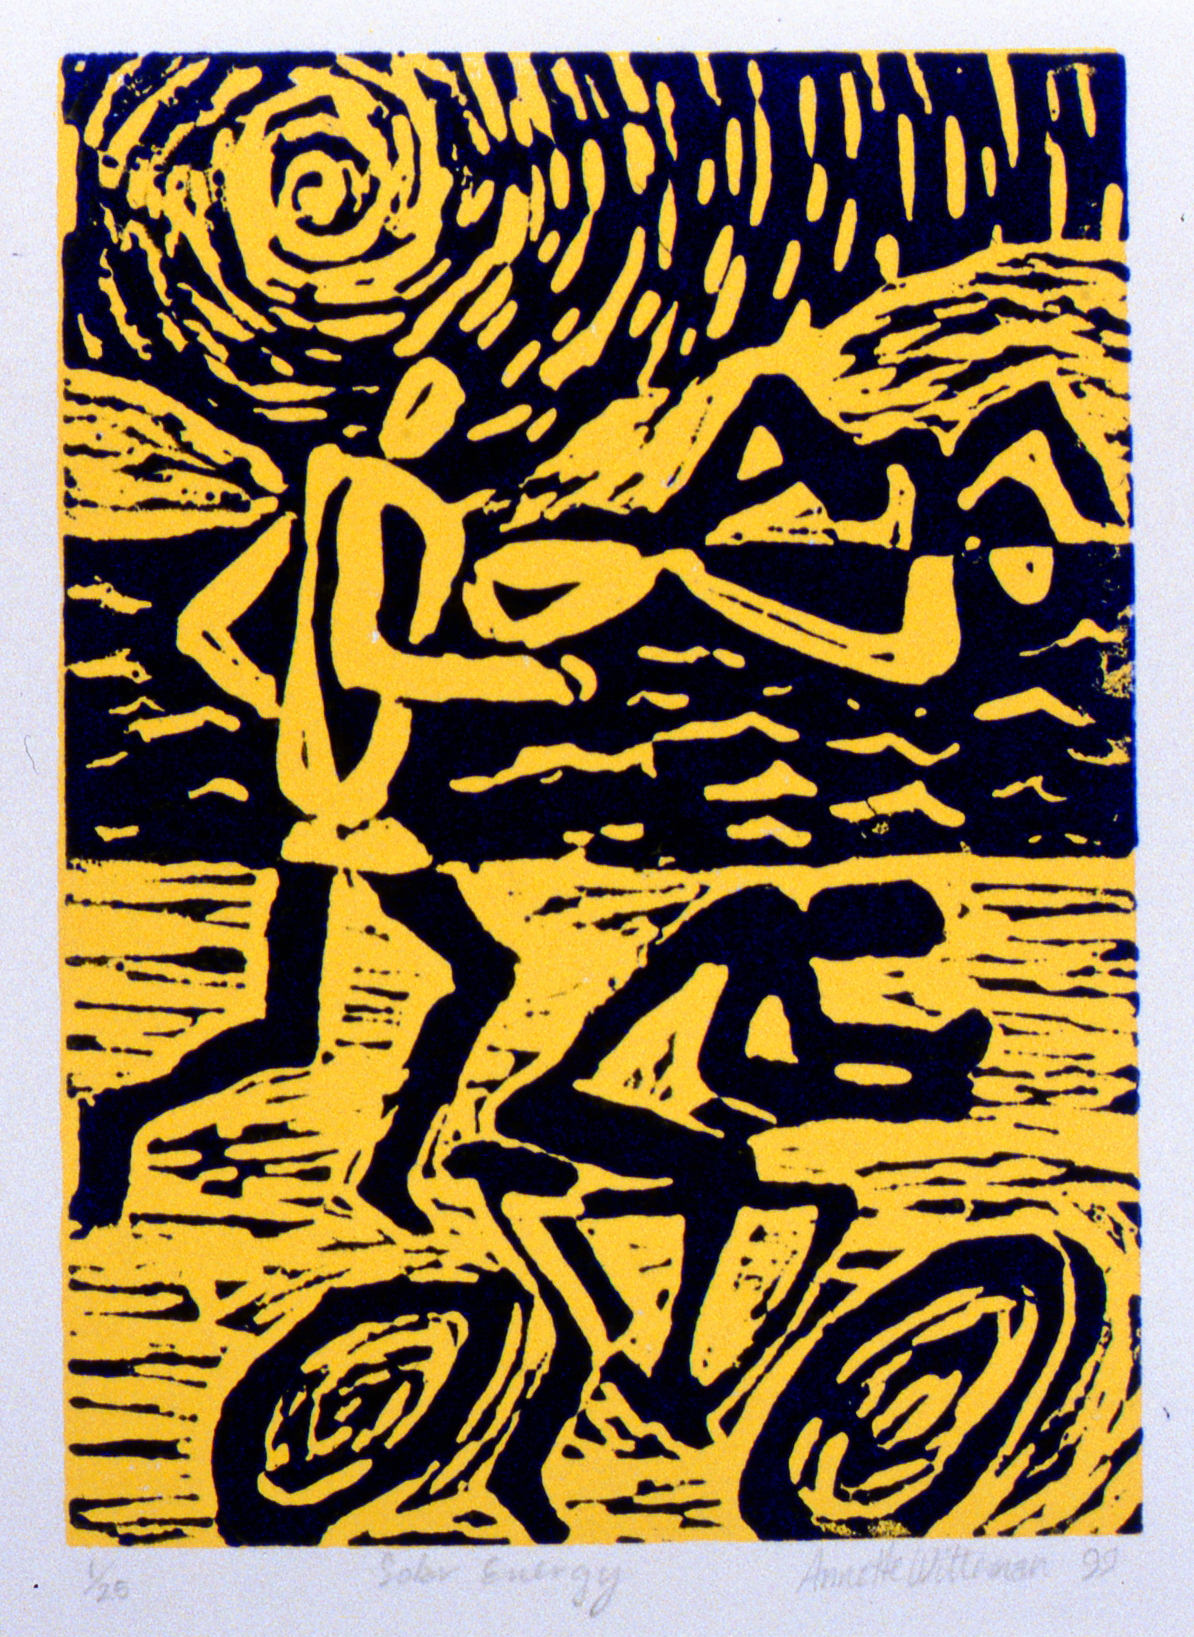 Solar Energy , The Spirit of Ironman Linocut Prints, edition 1/25, 1999, Annette Witteman, linocut print, 17.7 x 12.5 cm, 1999.02.08, gift of the artist